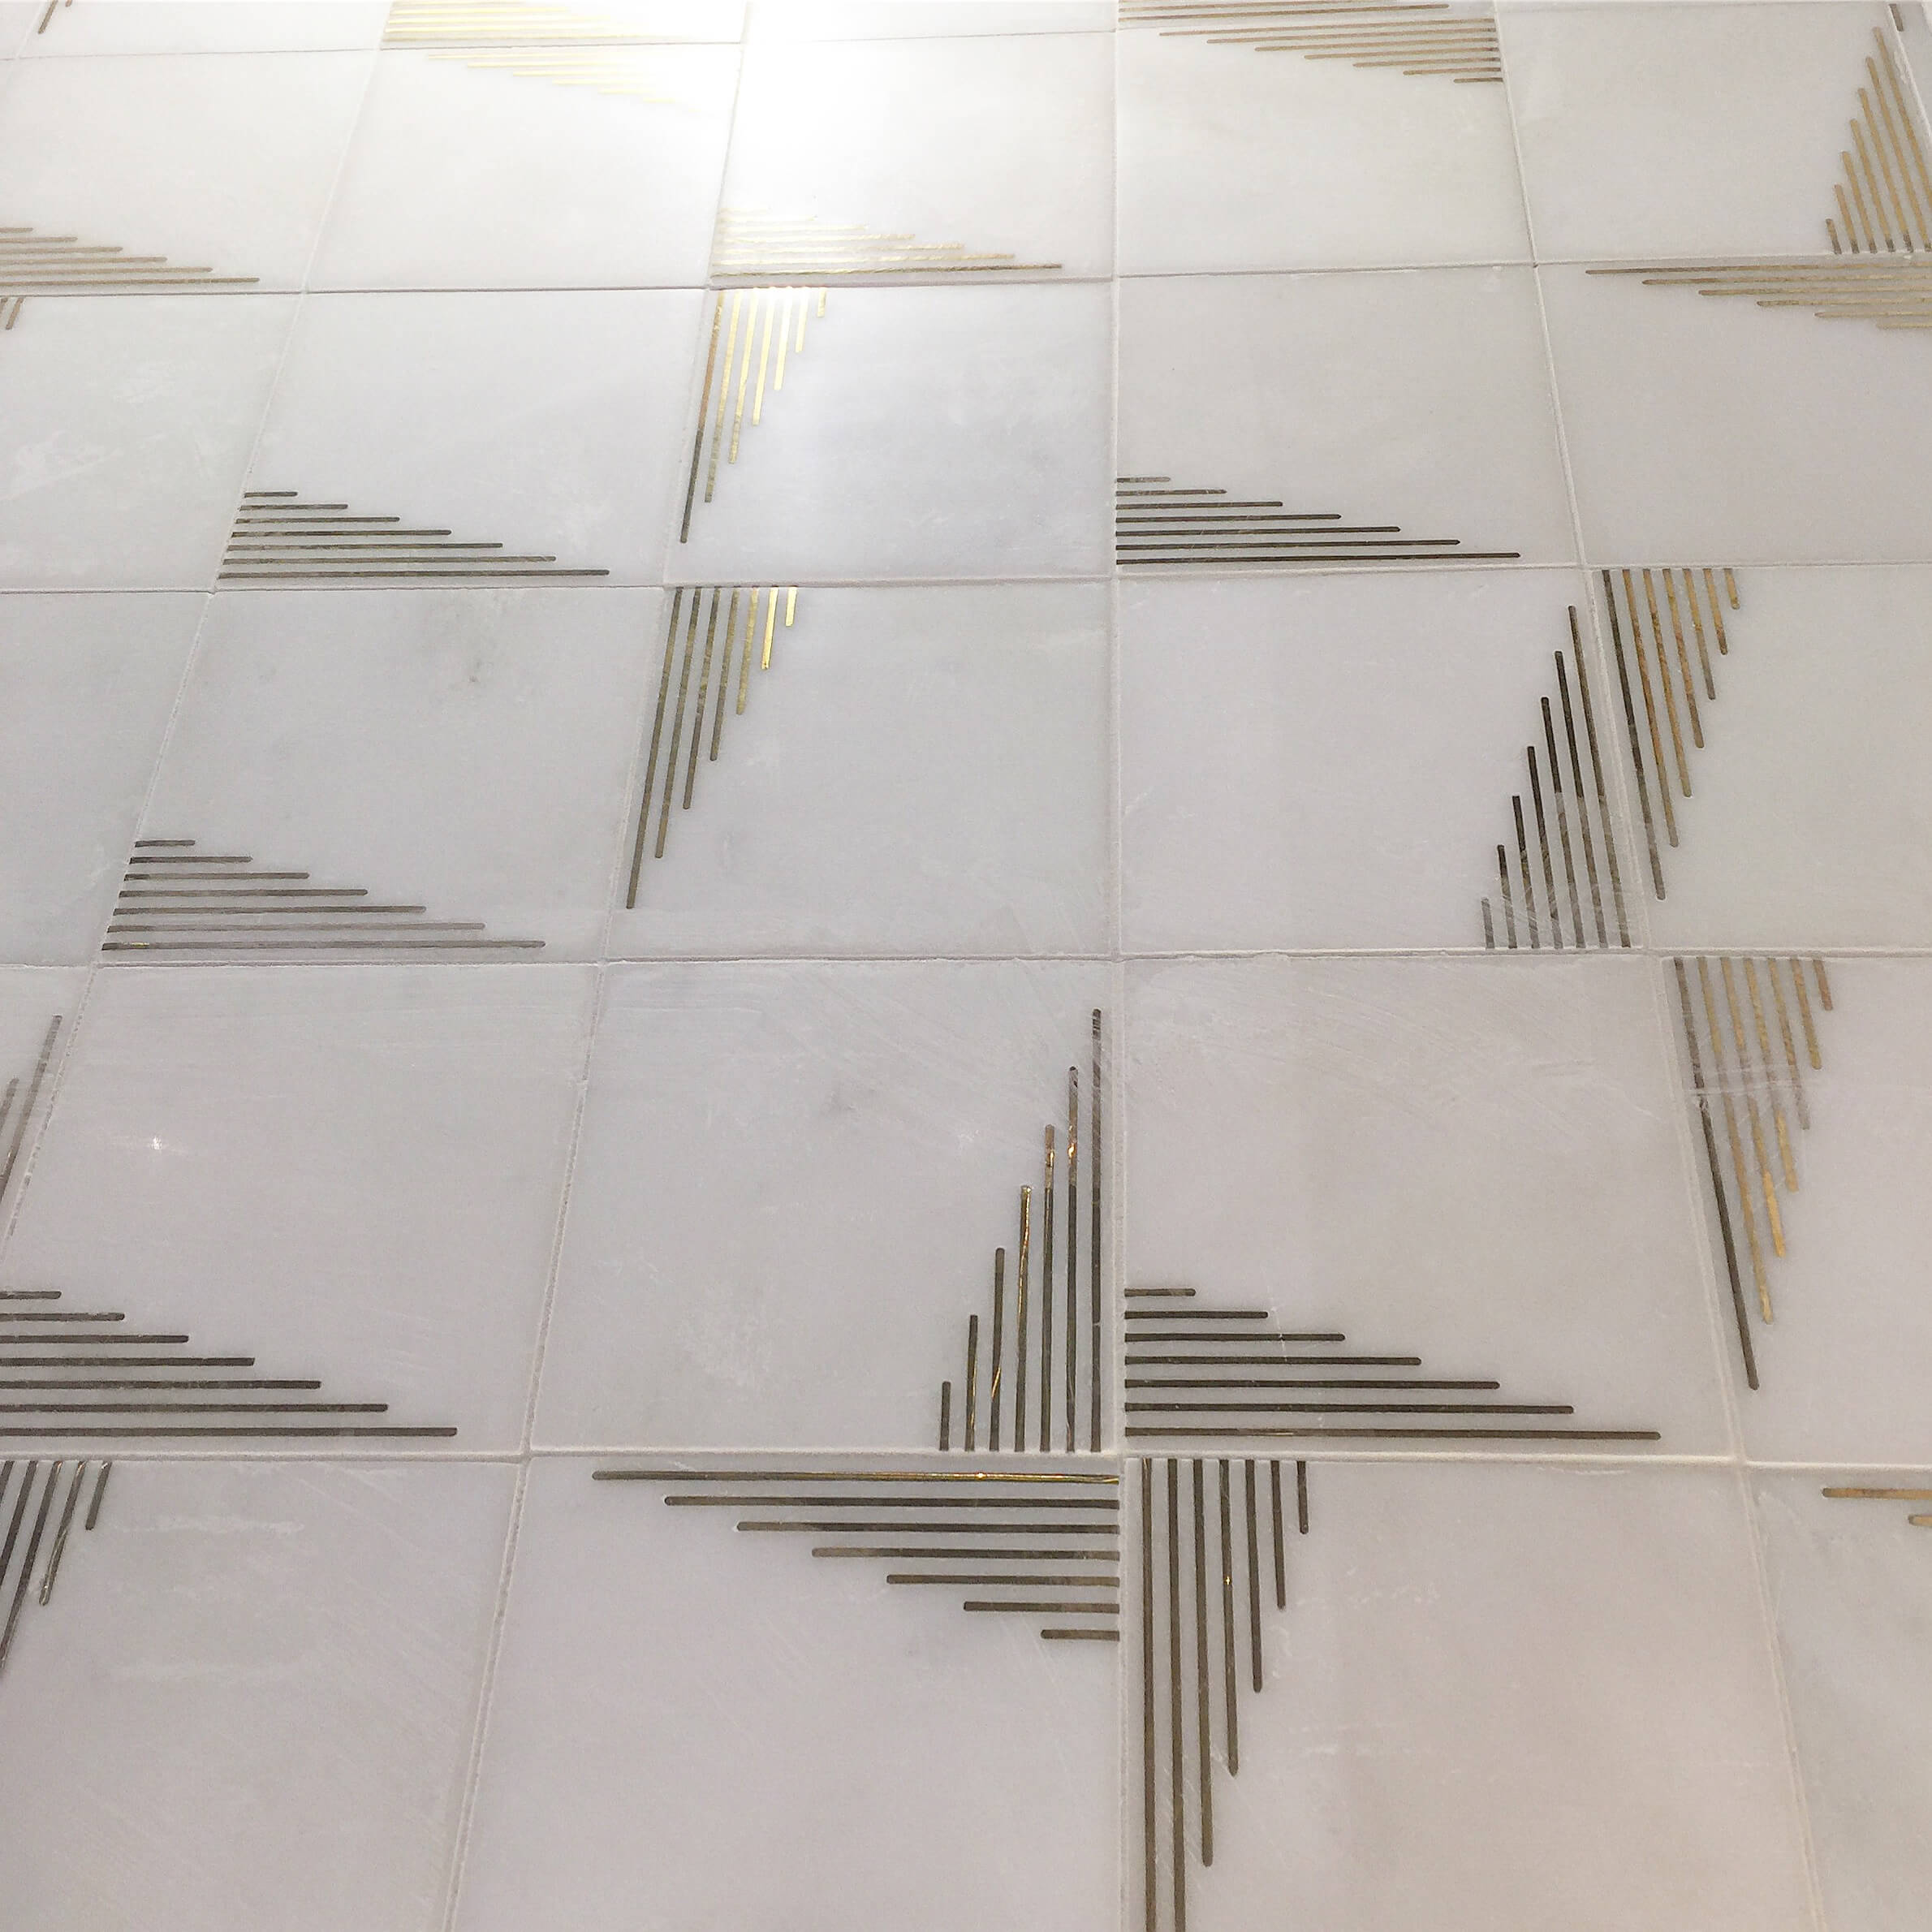 These beautiful marble tiles from Ann Sacks are sold with or without the brass inlay and patterns can be developed turning the tiles in different directions.